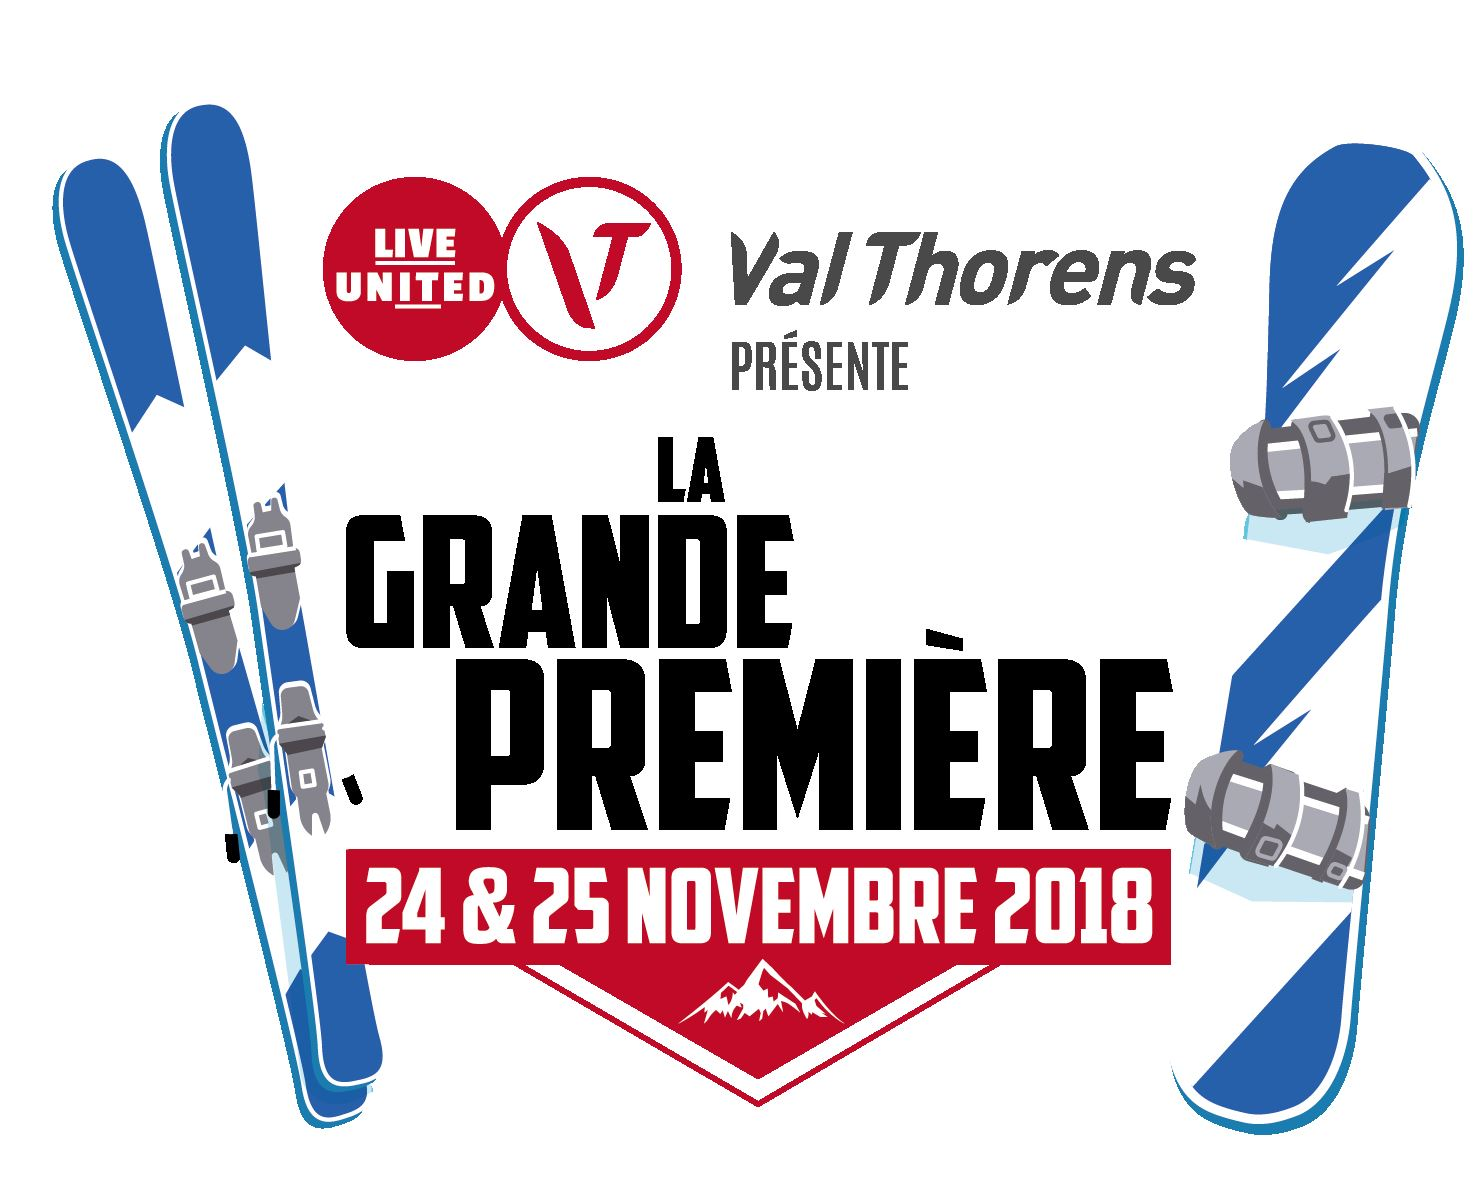 WEEKEND LA GRANDE PREMIERE - FROM 23/11/18 TO 25/11/18 - HOTEL - FROM 208 € / PERS*